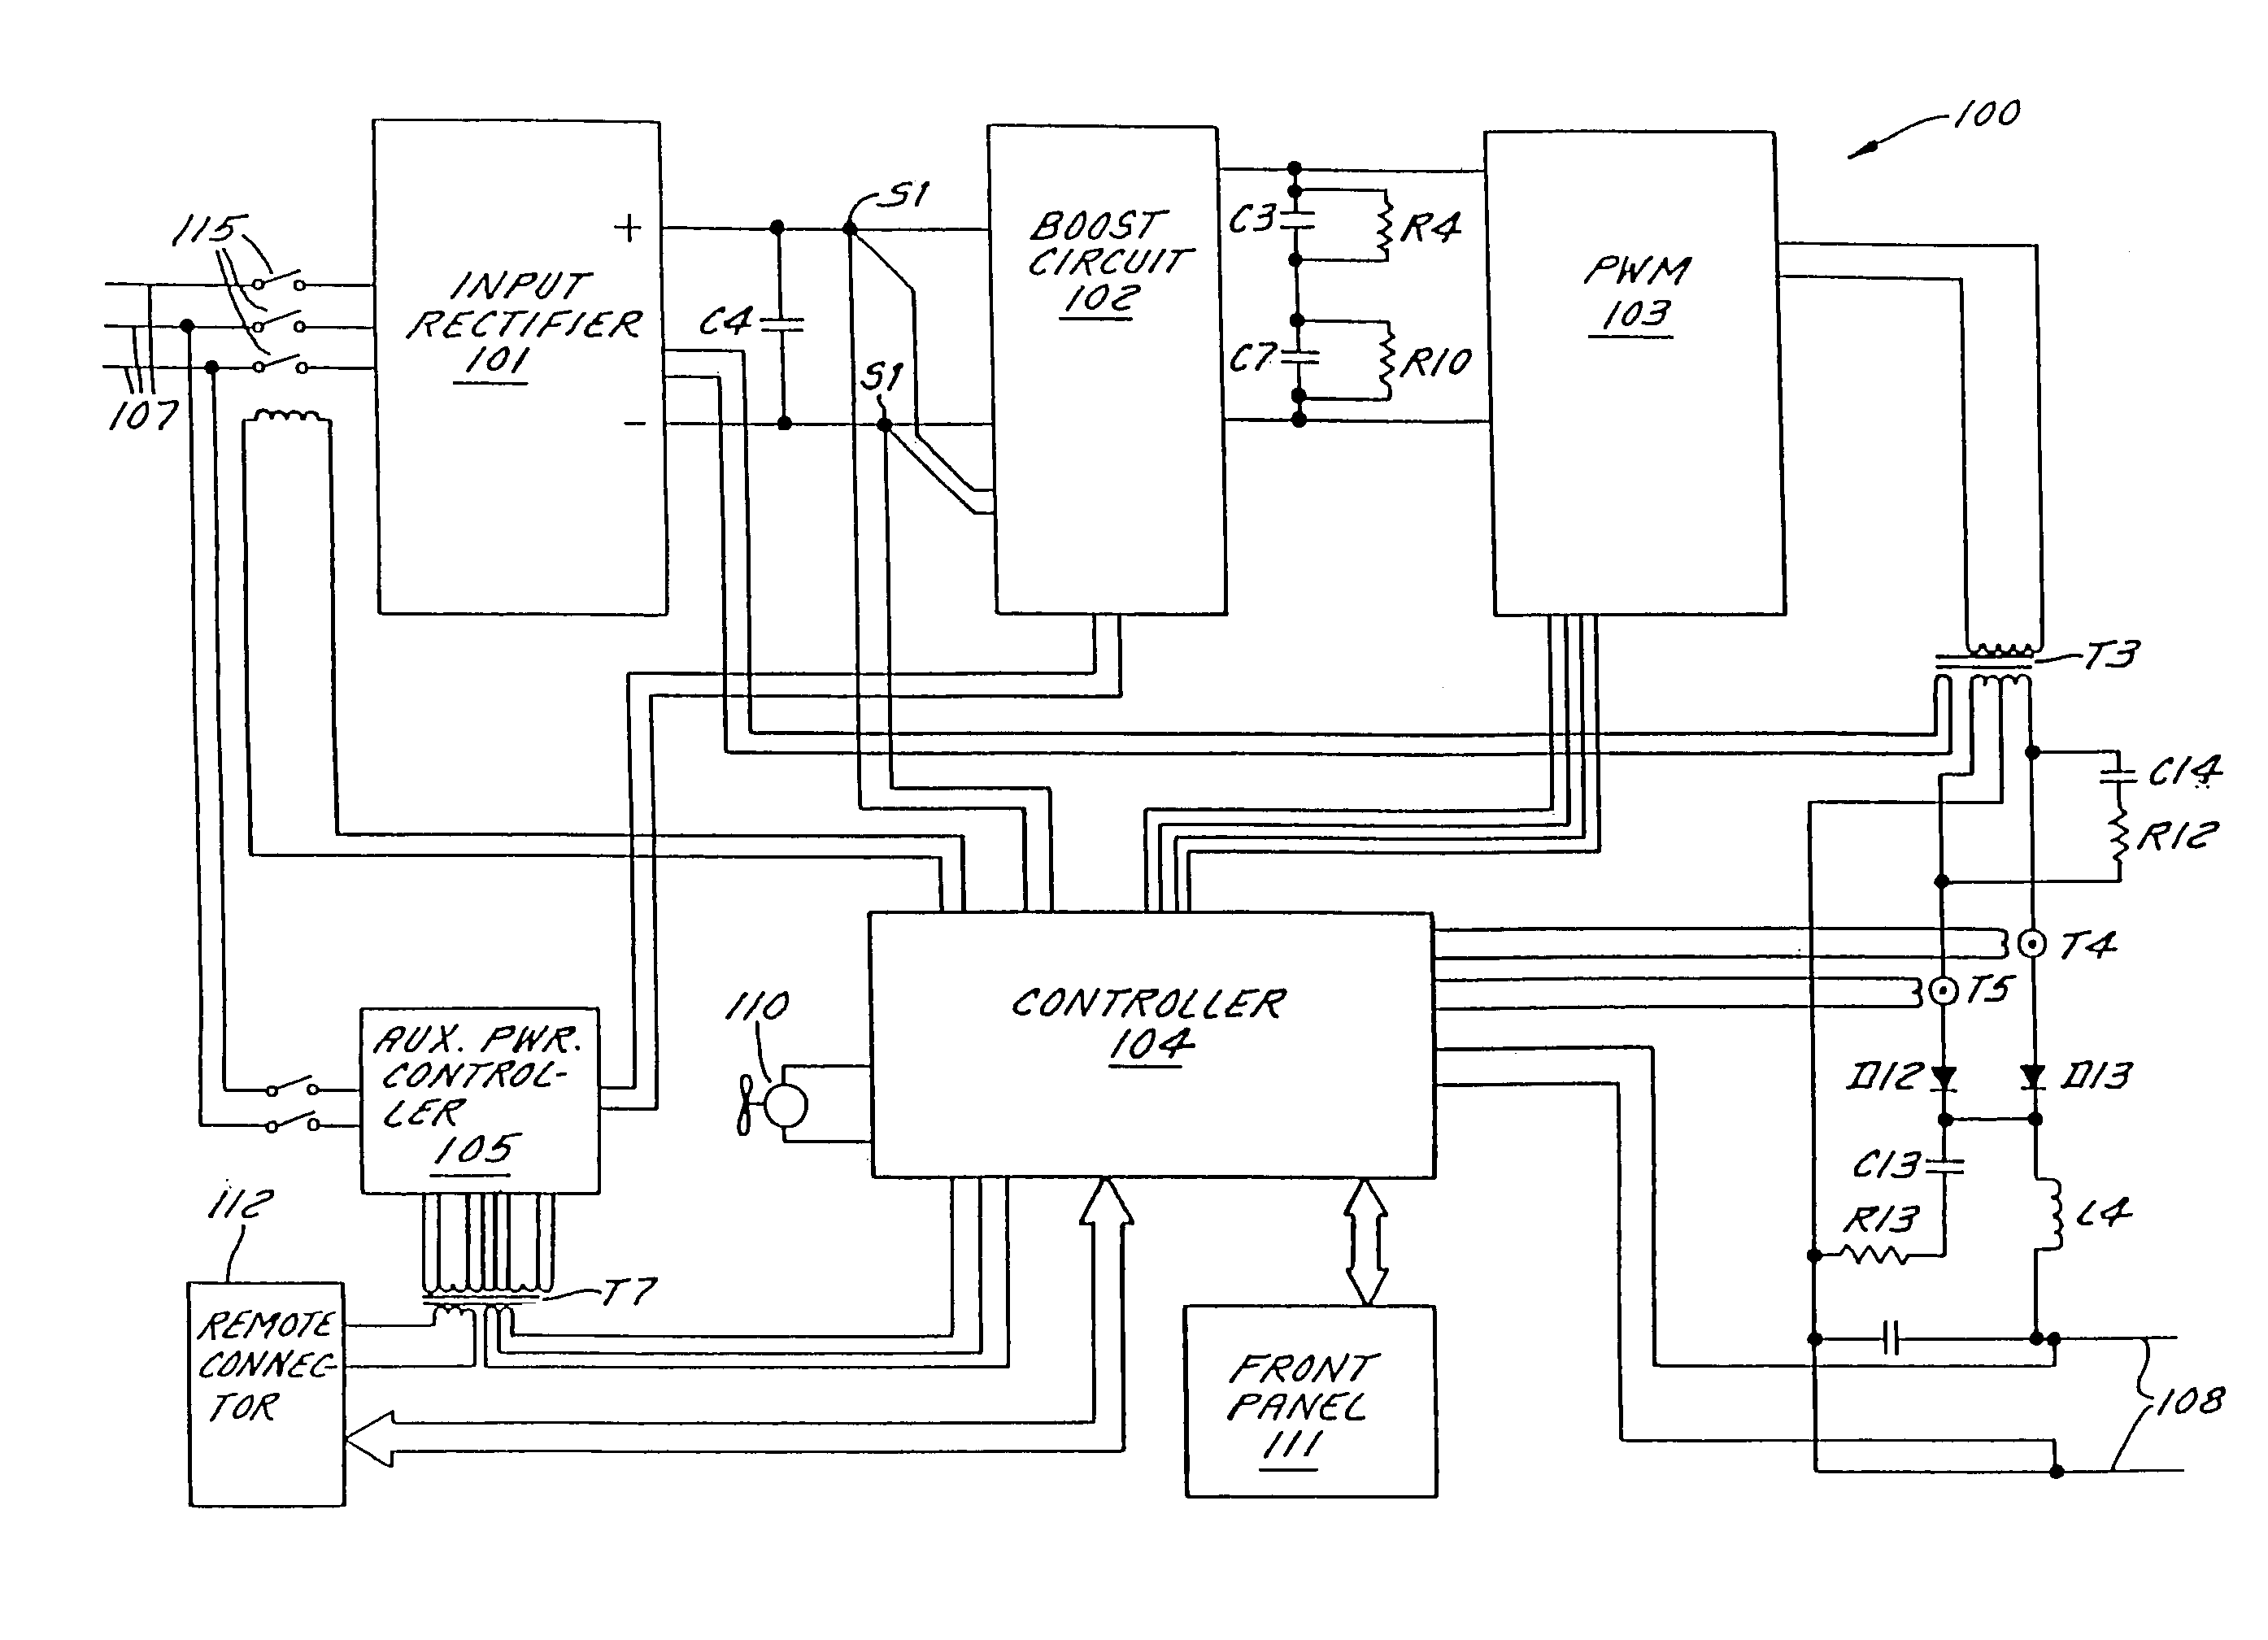 wrg 7069] wiring diagram for lincoln welding machinetwiring diagram for lincoln sa 200 welding machine simple wiring old lincoln welder parts 200 lincoln